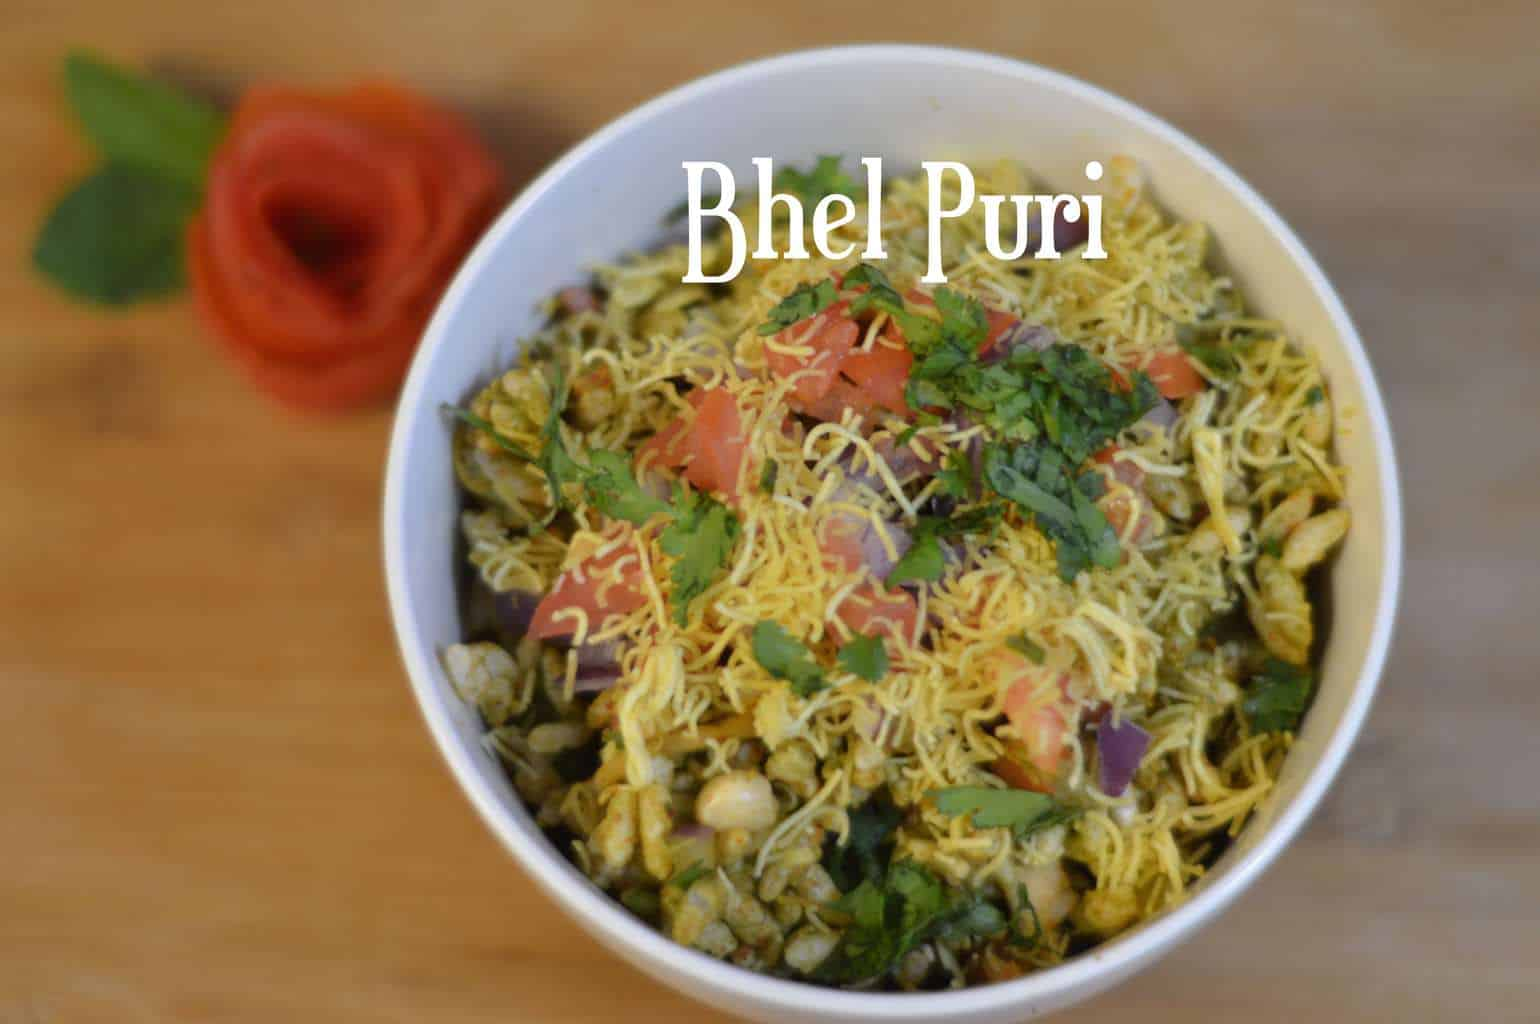 Bhel Puri Chaat Recipe is one of the most popular chaat's made of puffed rice, vegetables, green chutney , tangy tamarind sauce and few spices.